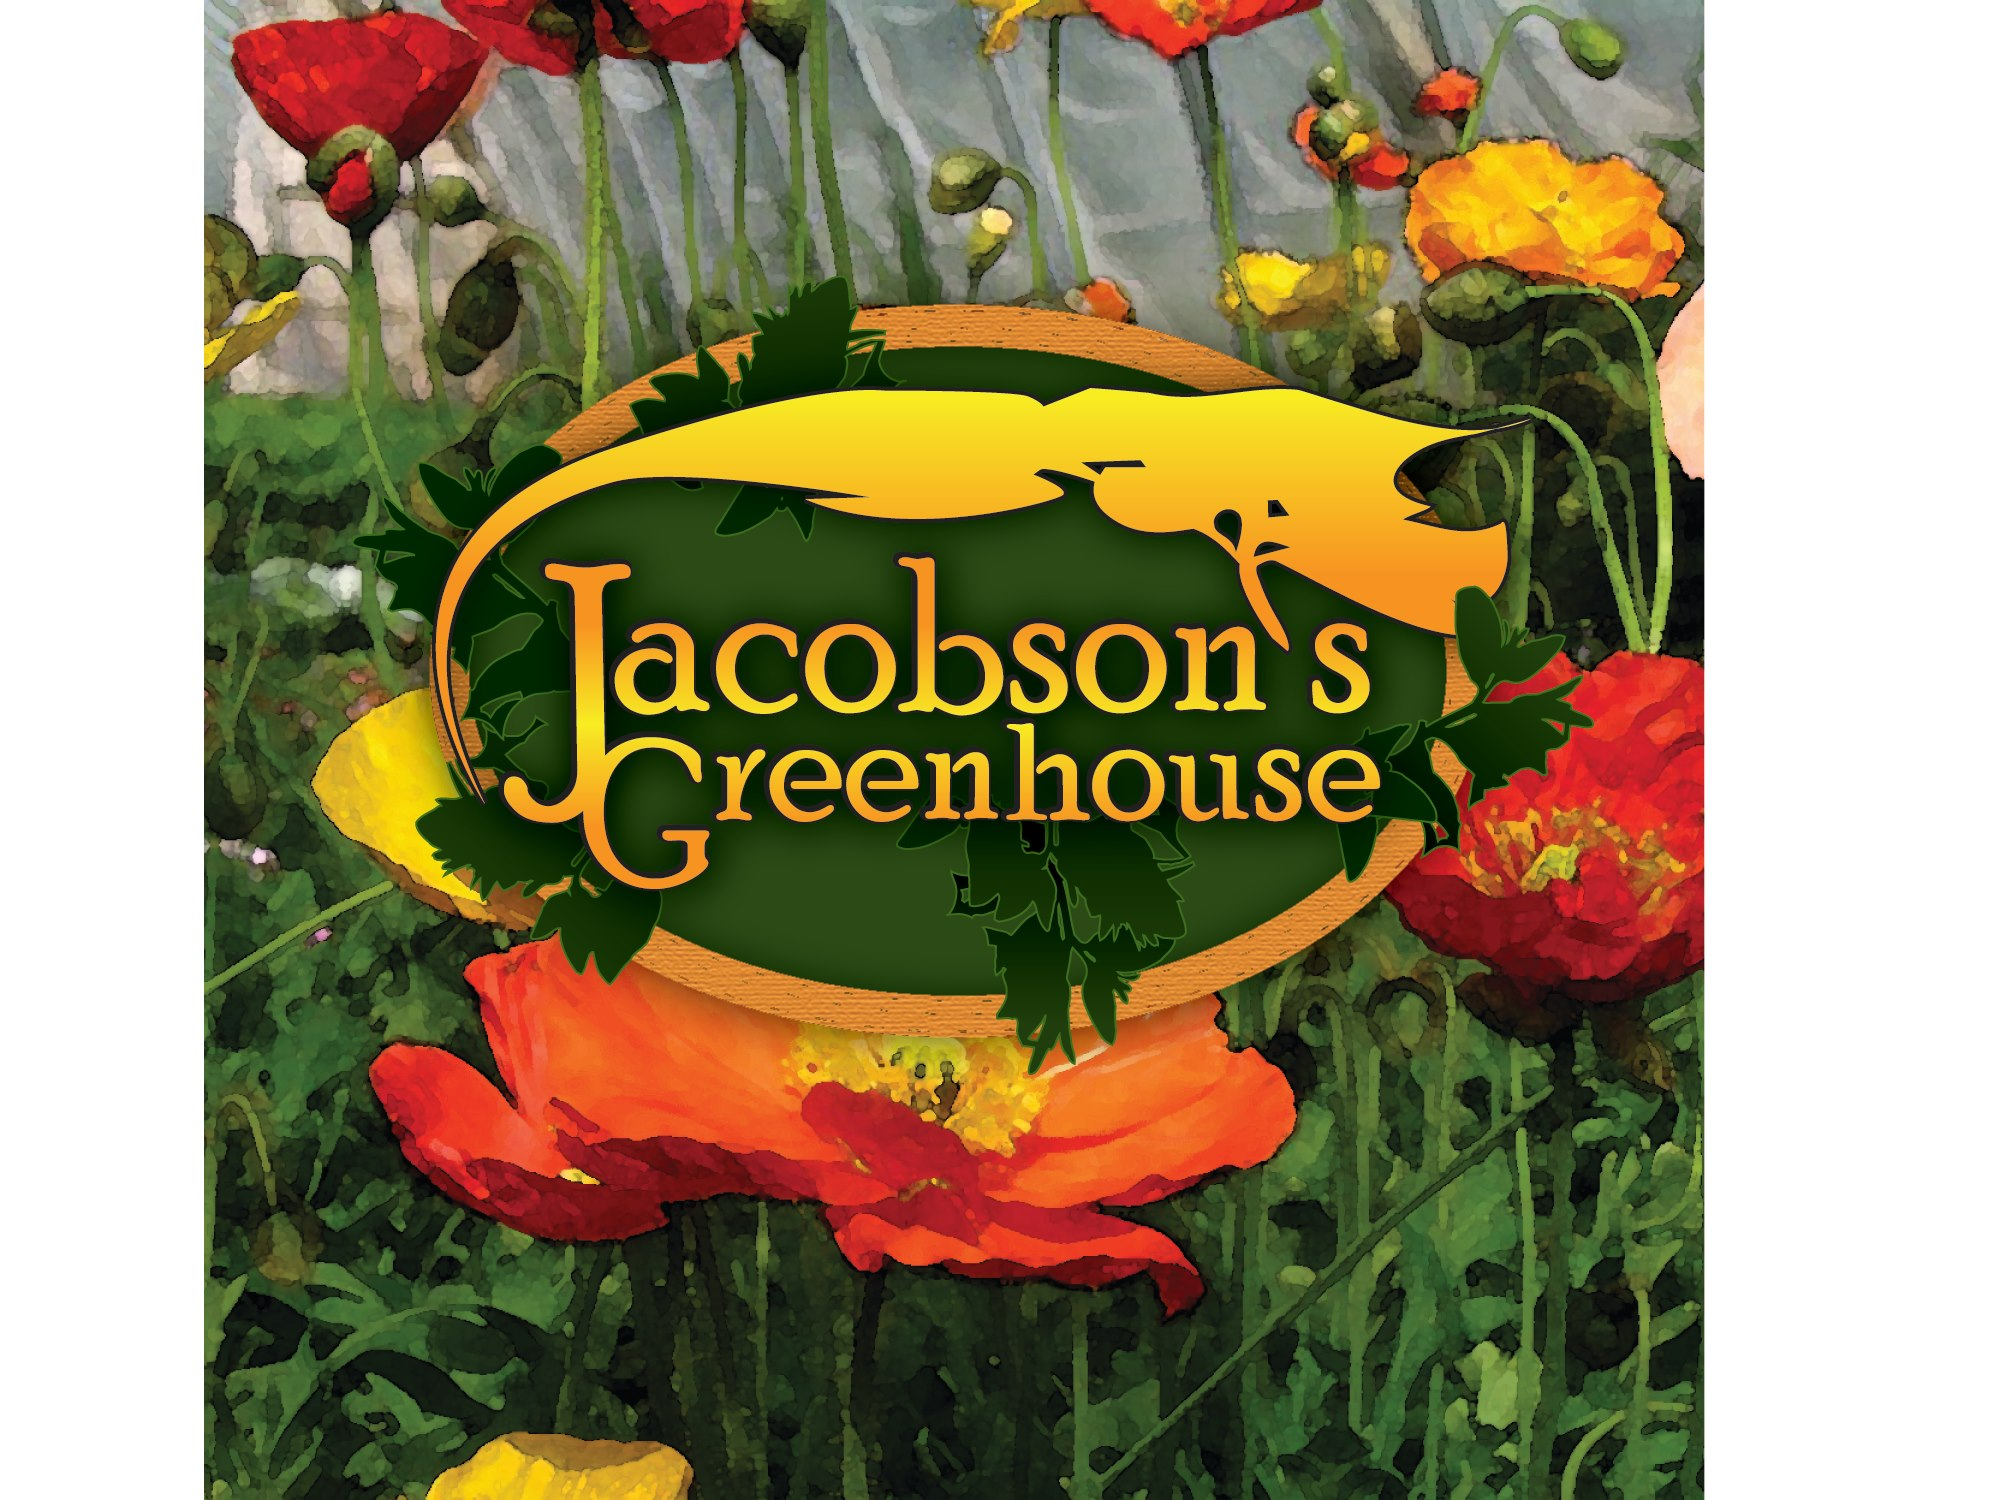 Business logo of Jacobson's Greenhouse